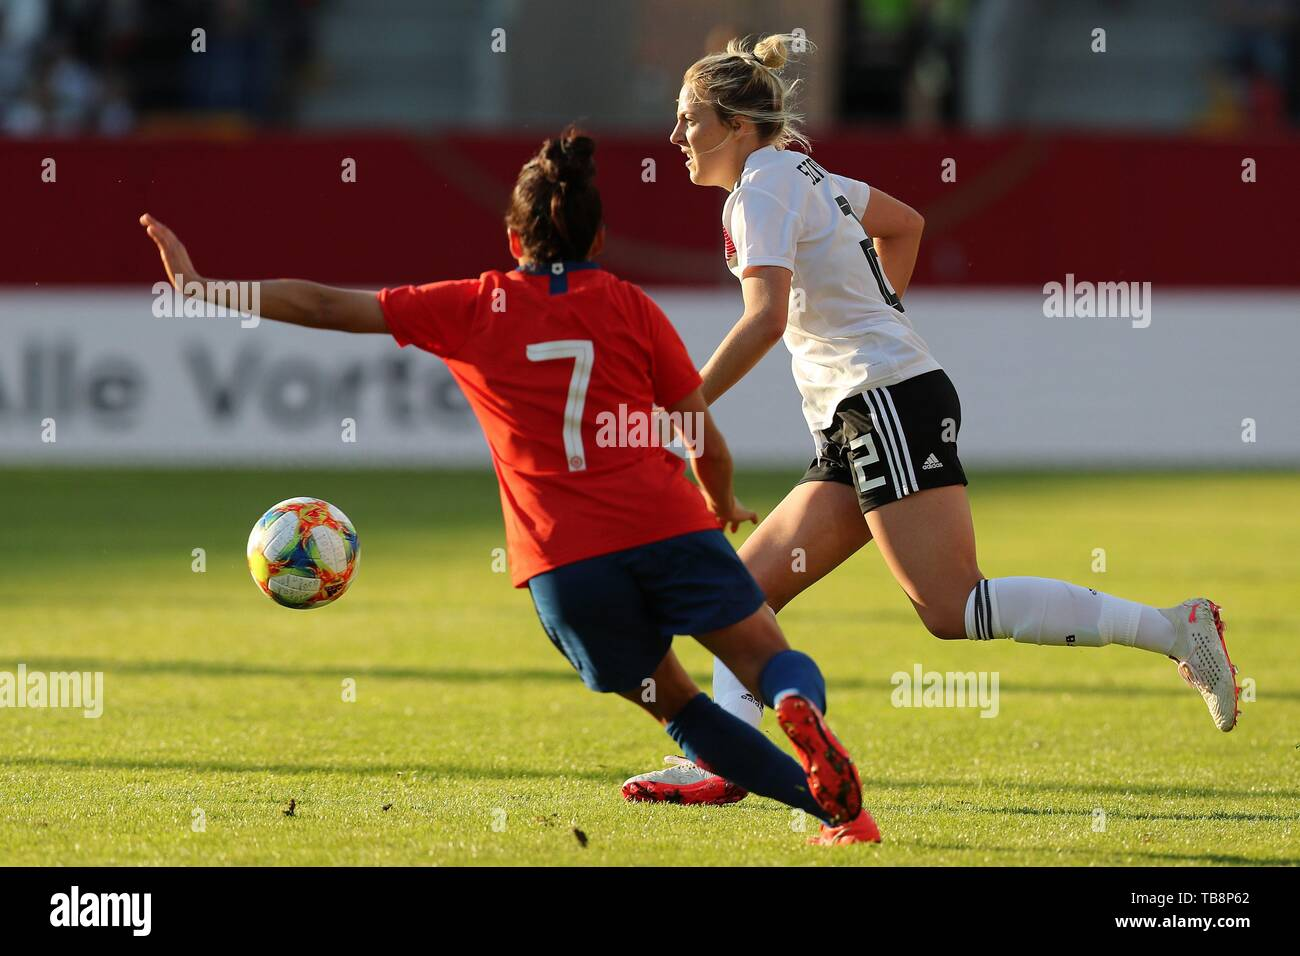 firo: 30.05.2019, Football, Landerspiel, Test match women, Germany - Chile, Carolin Simon, Germany, DFB, GER, full figure, duels, Commerzbank, | usage worldwide Stock Photo